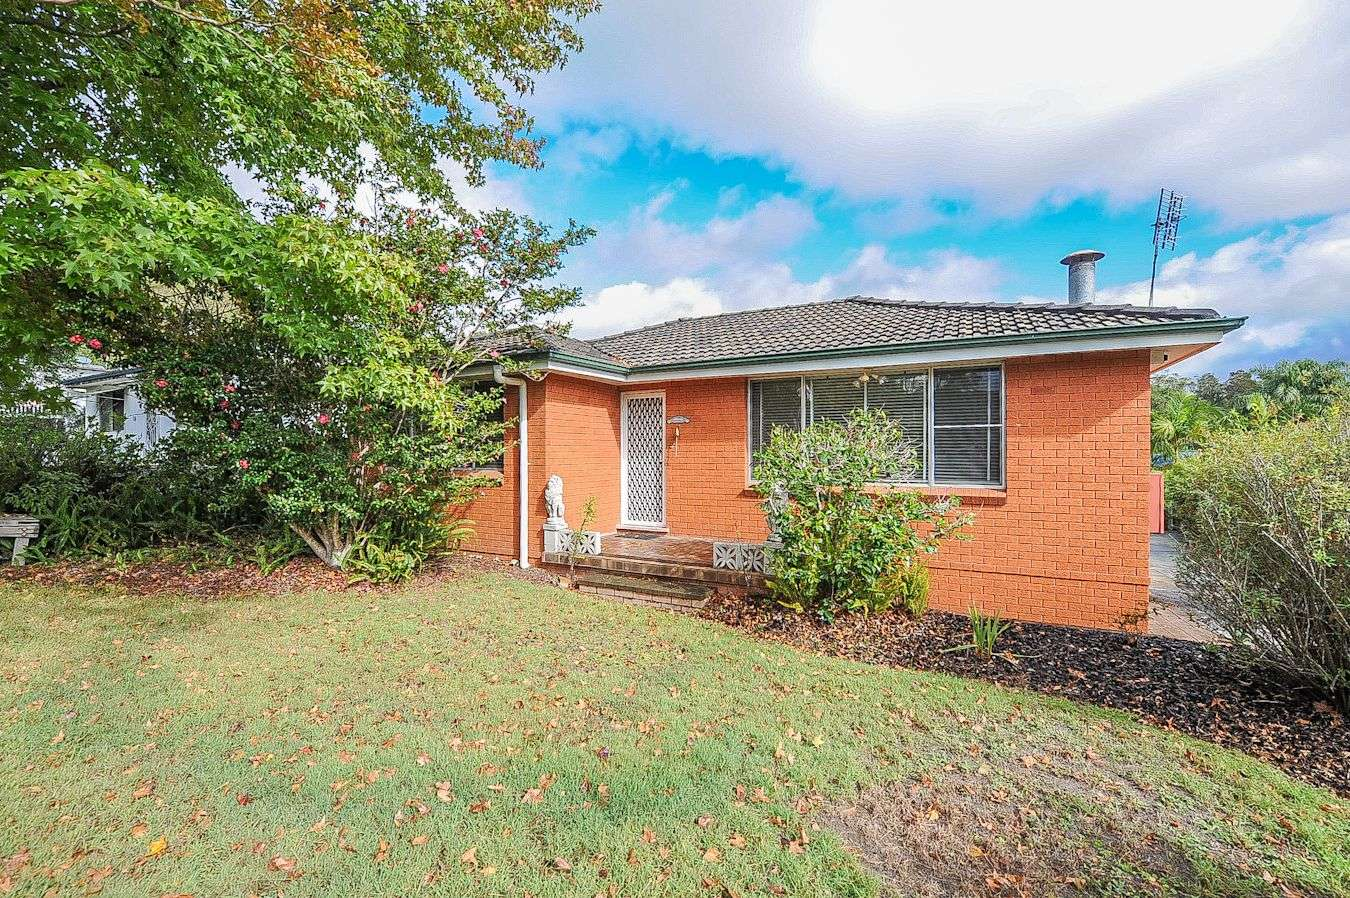 Main view of Homely house listing, 12 Matthews Parade, Point Clare, NSW 2250